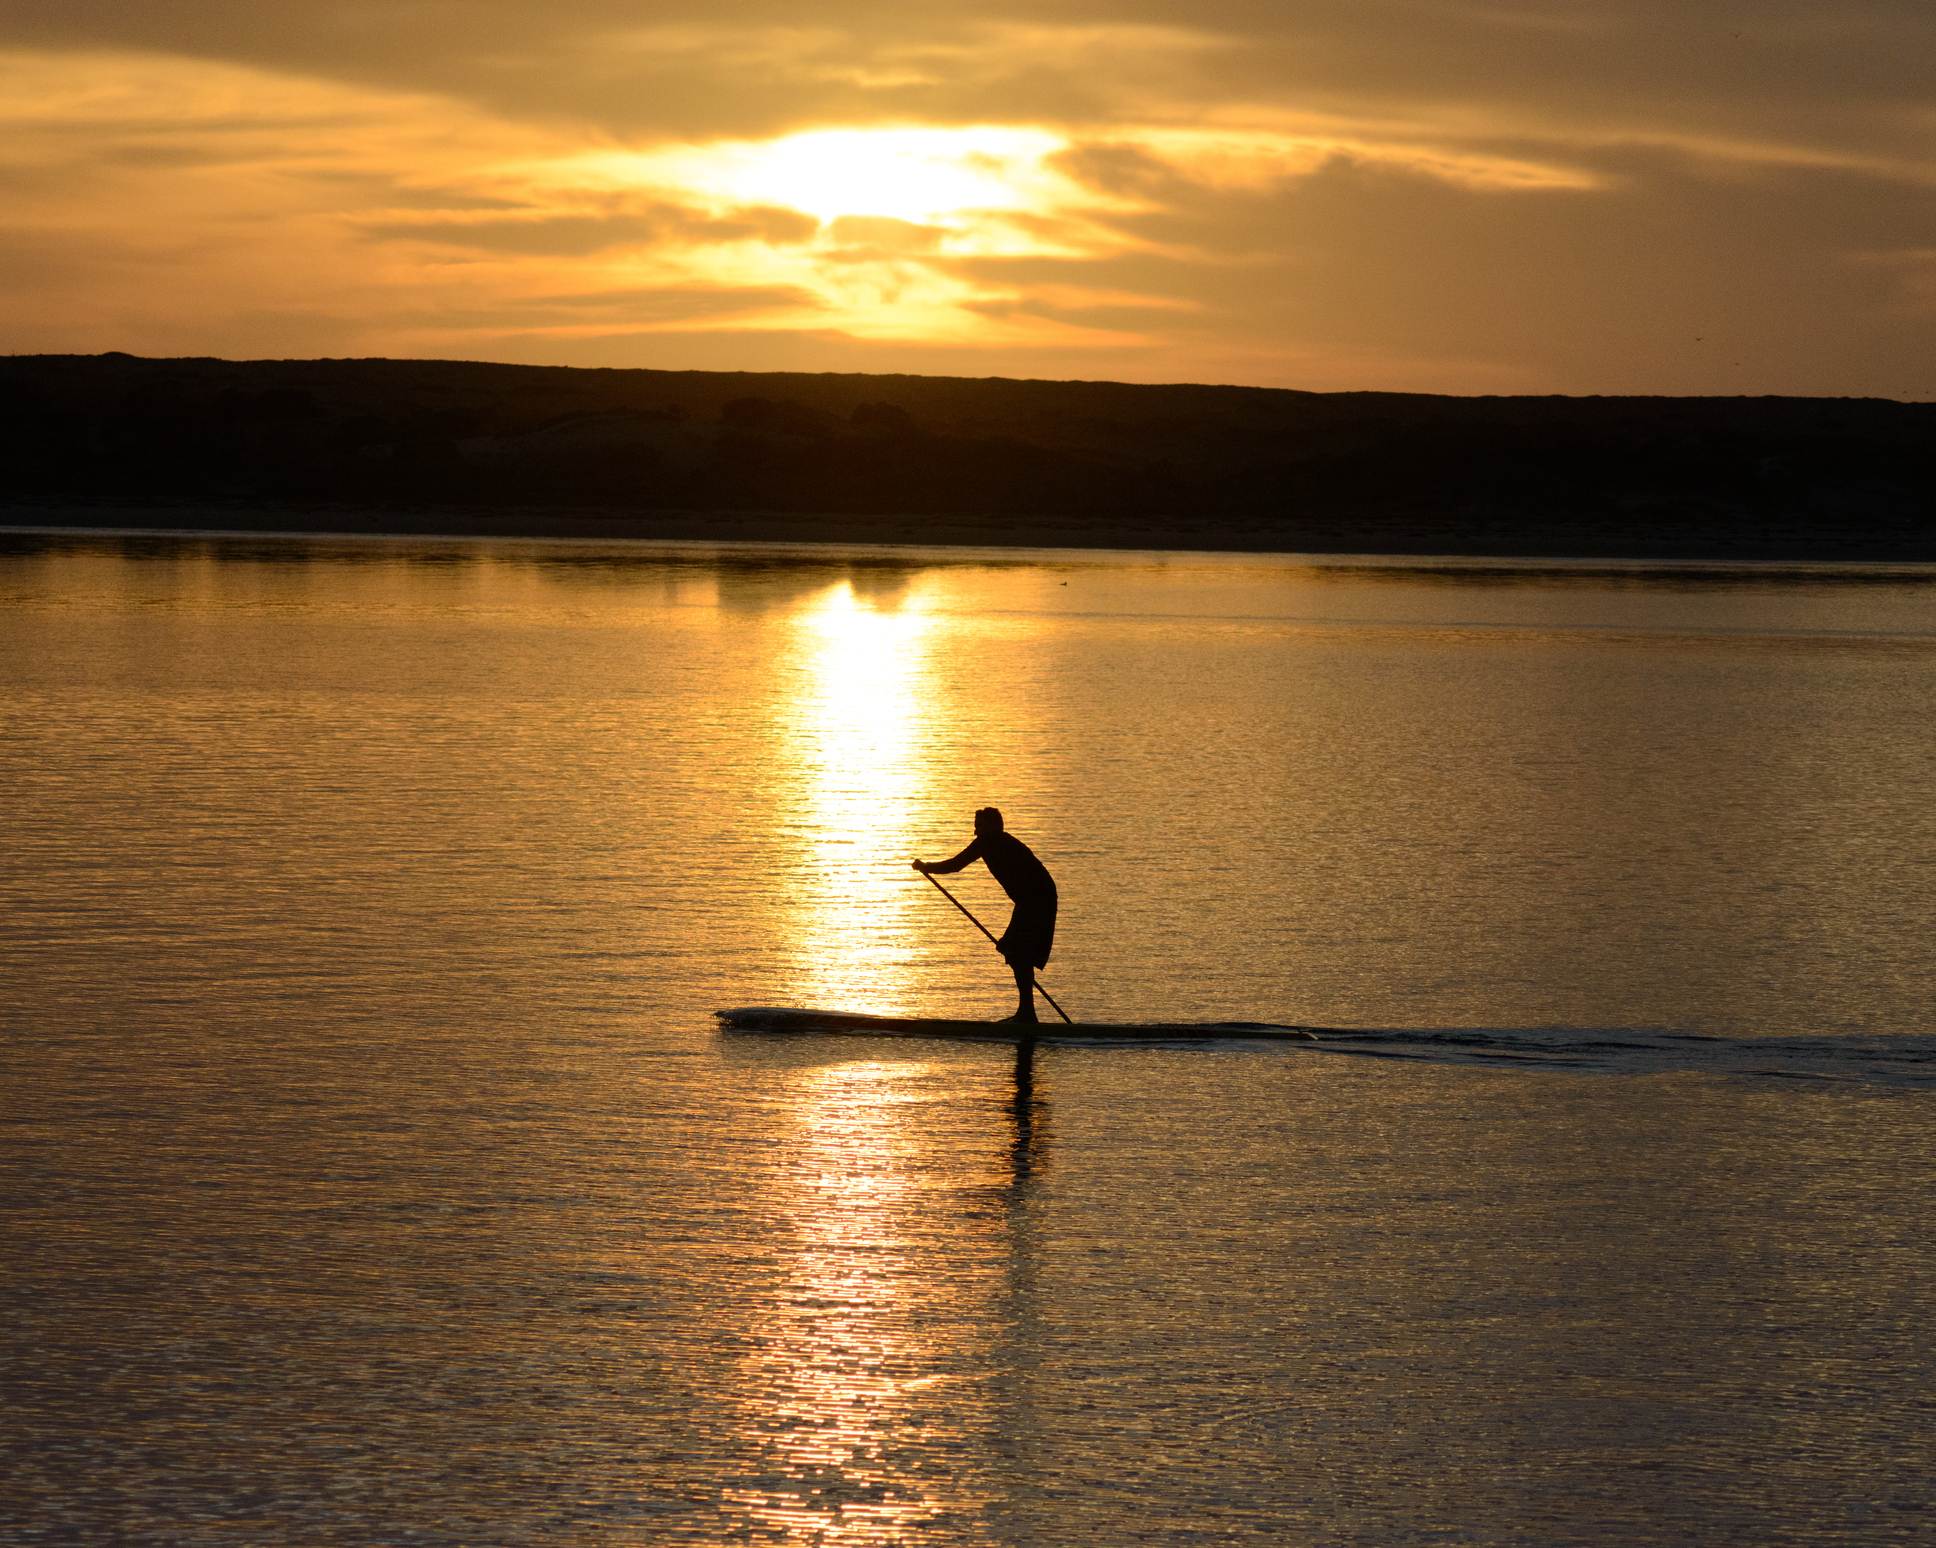 A man paddleboarding during sunset.